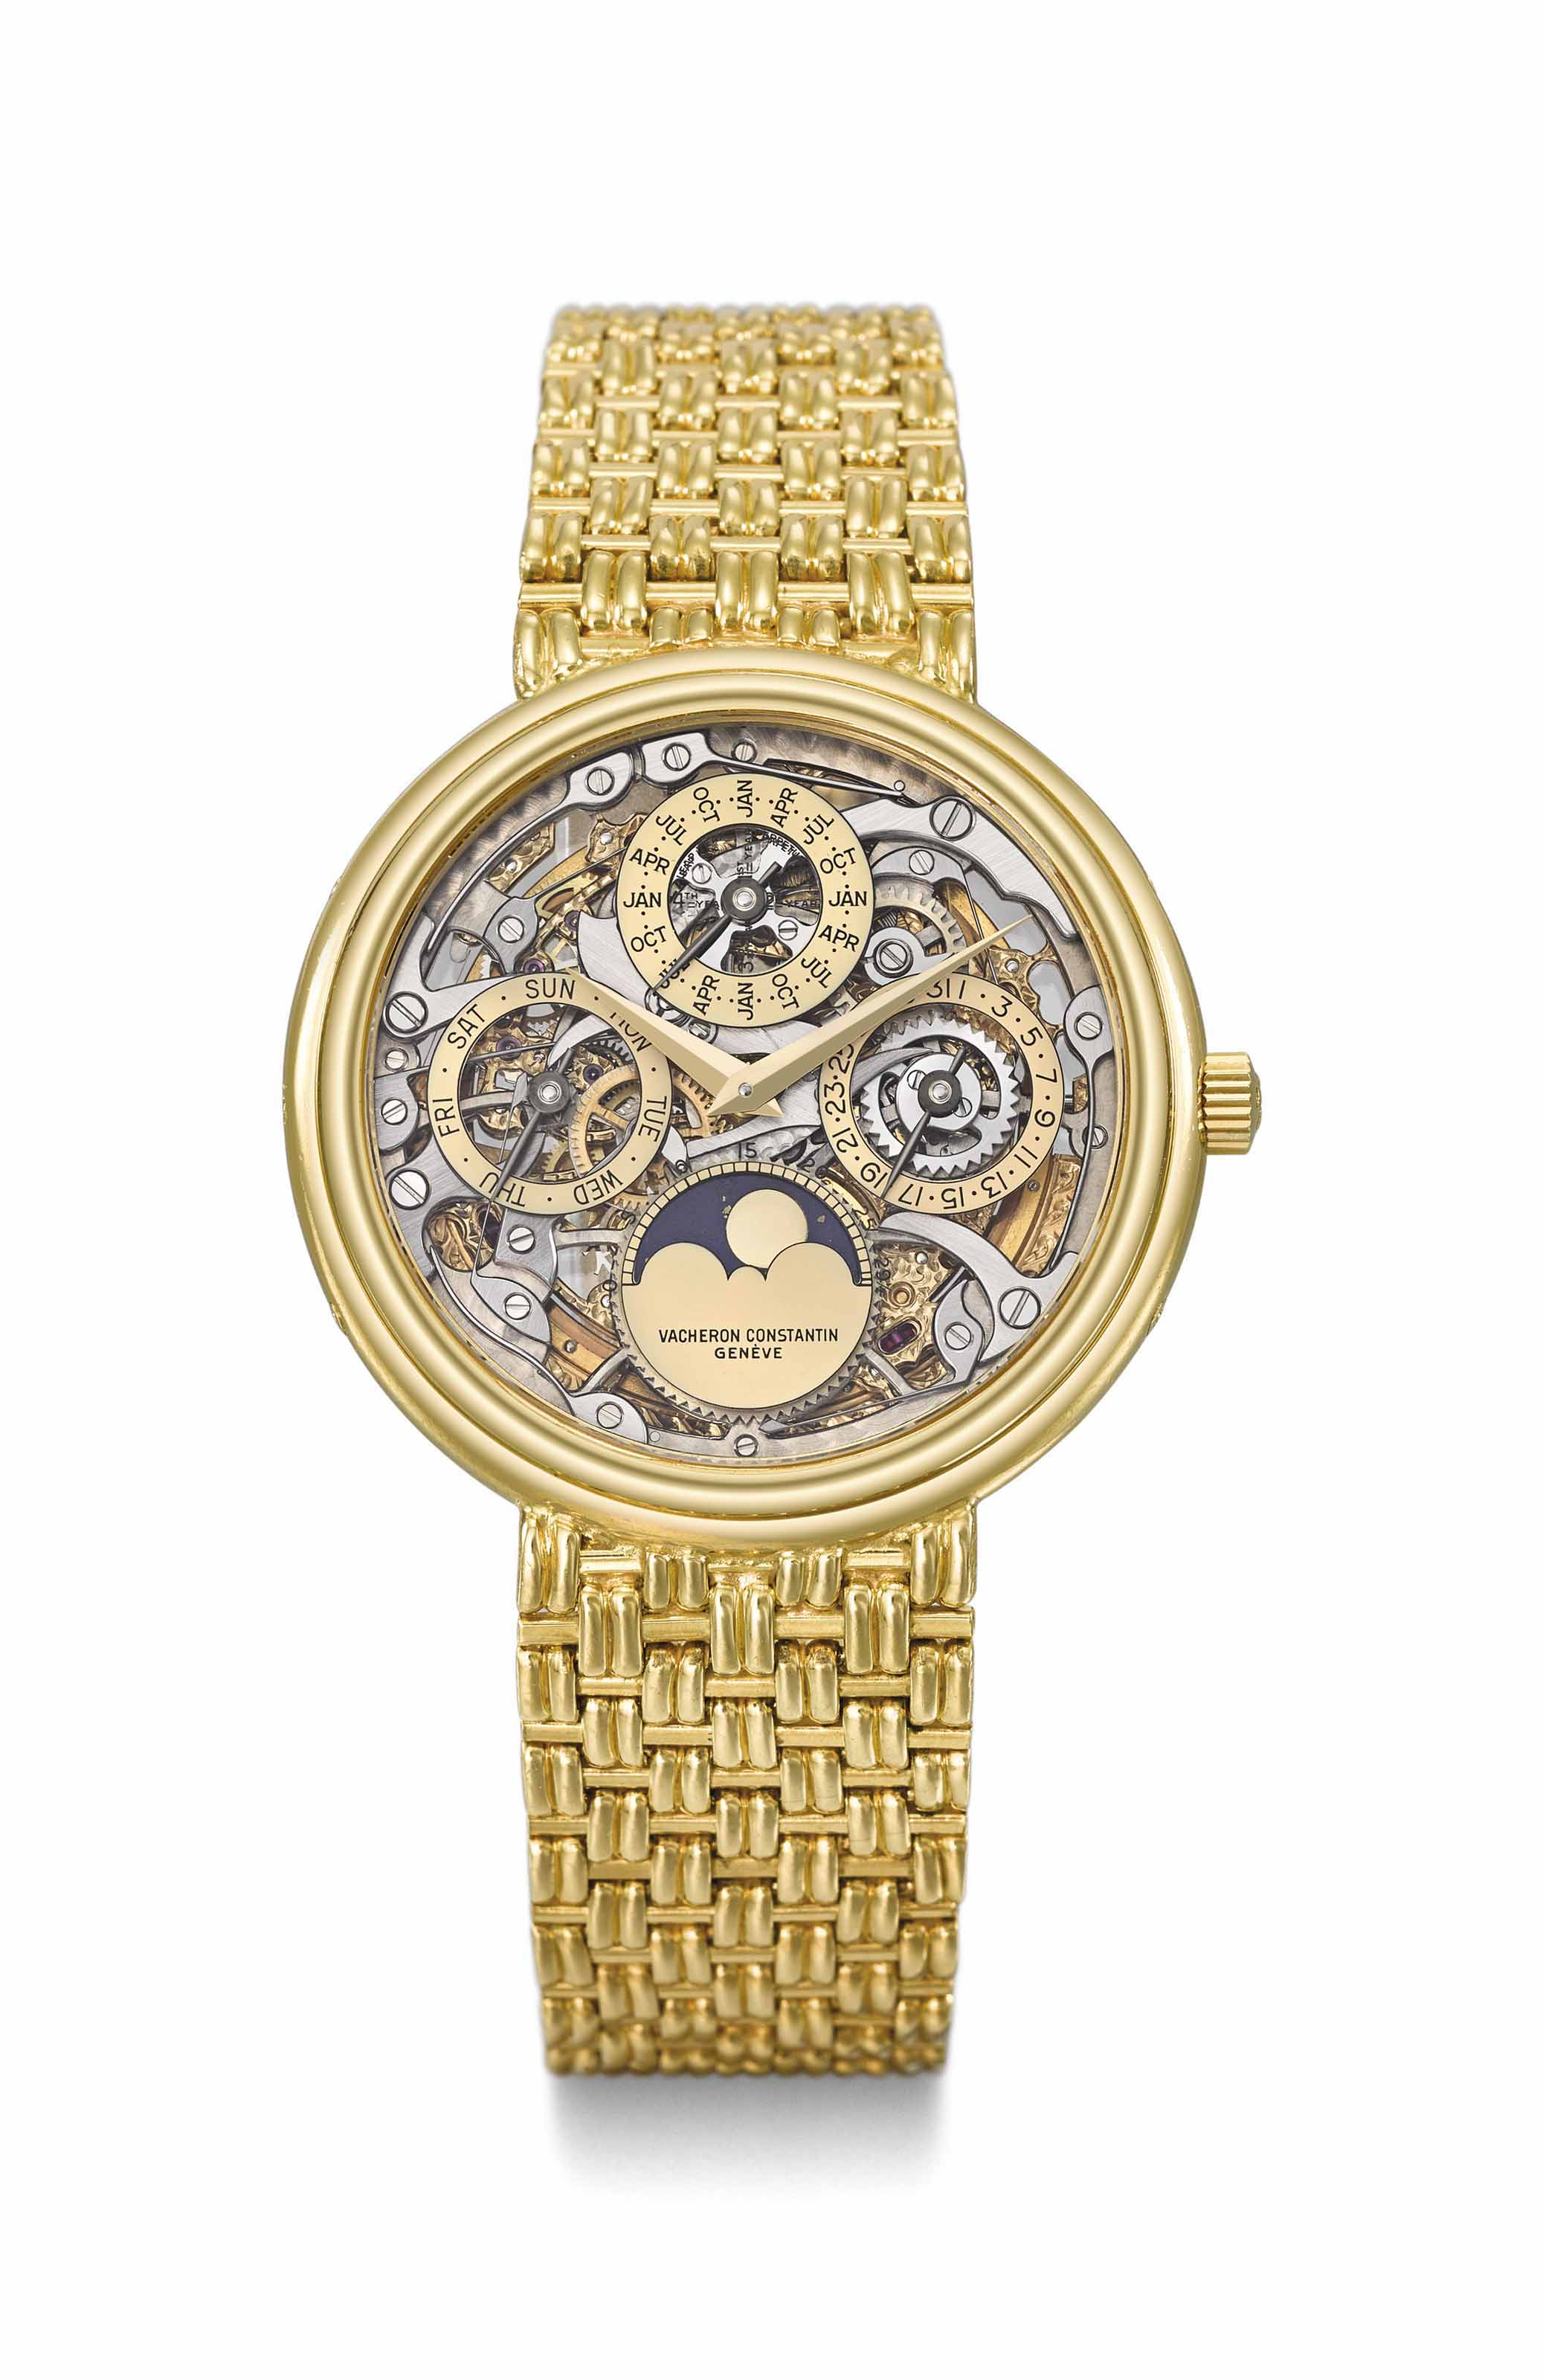 f9d89ae686e Vacheron Constantin. A very fine and rare 18K gold automatic perpetual  calendar skeletonized wristwatch with moon phases and integral 18K gold  bracelet